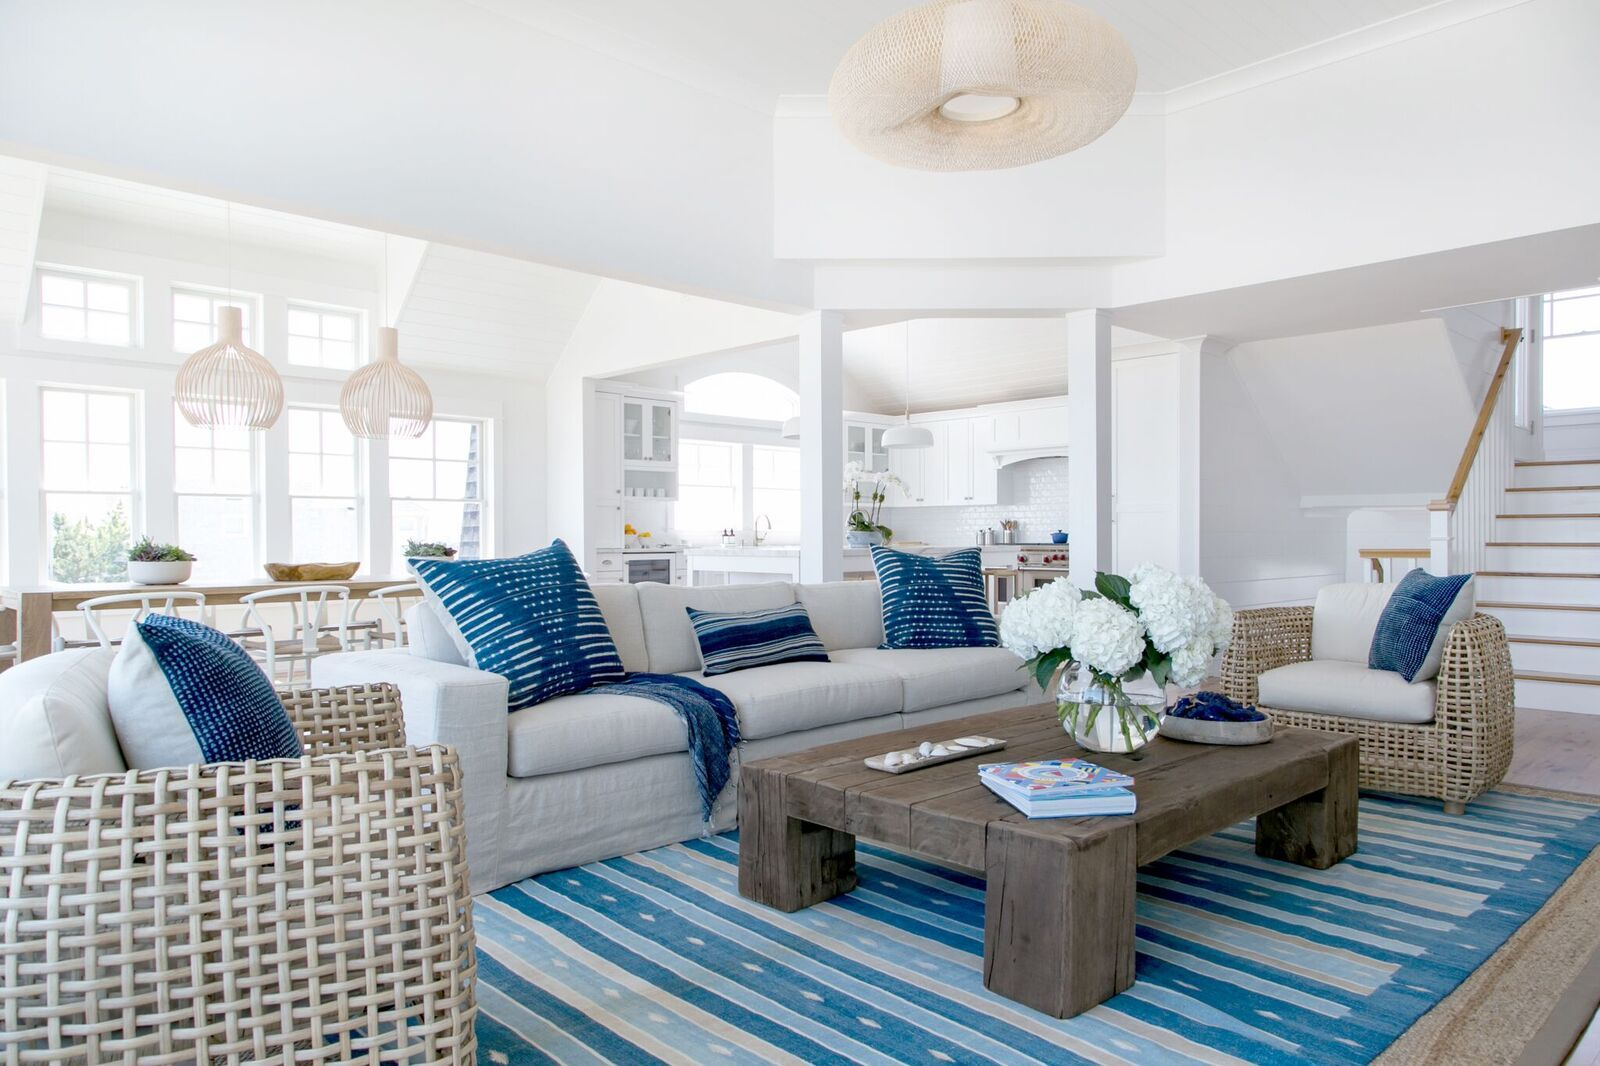 Tour a Breezy Beach House Inspired by Its Landscape | Living rooms ...